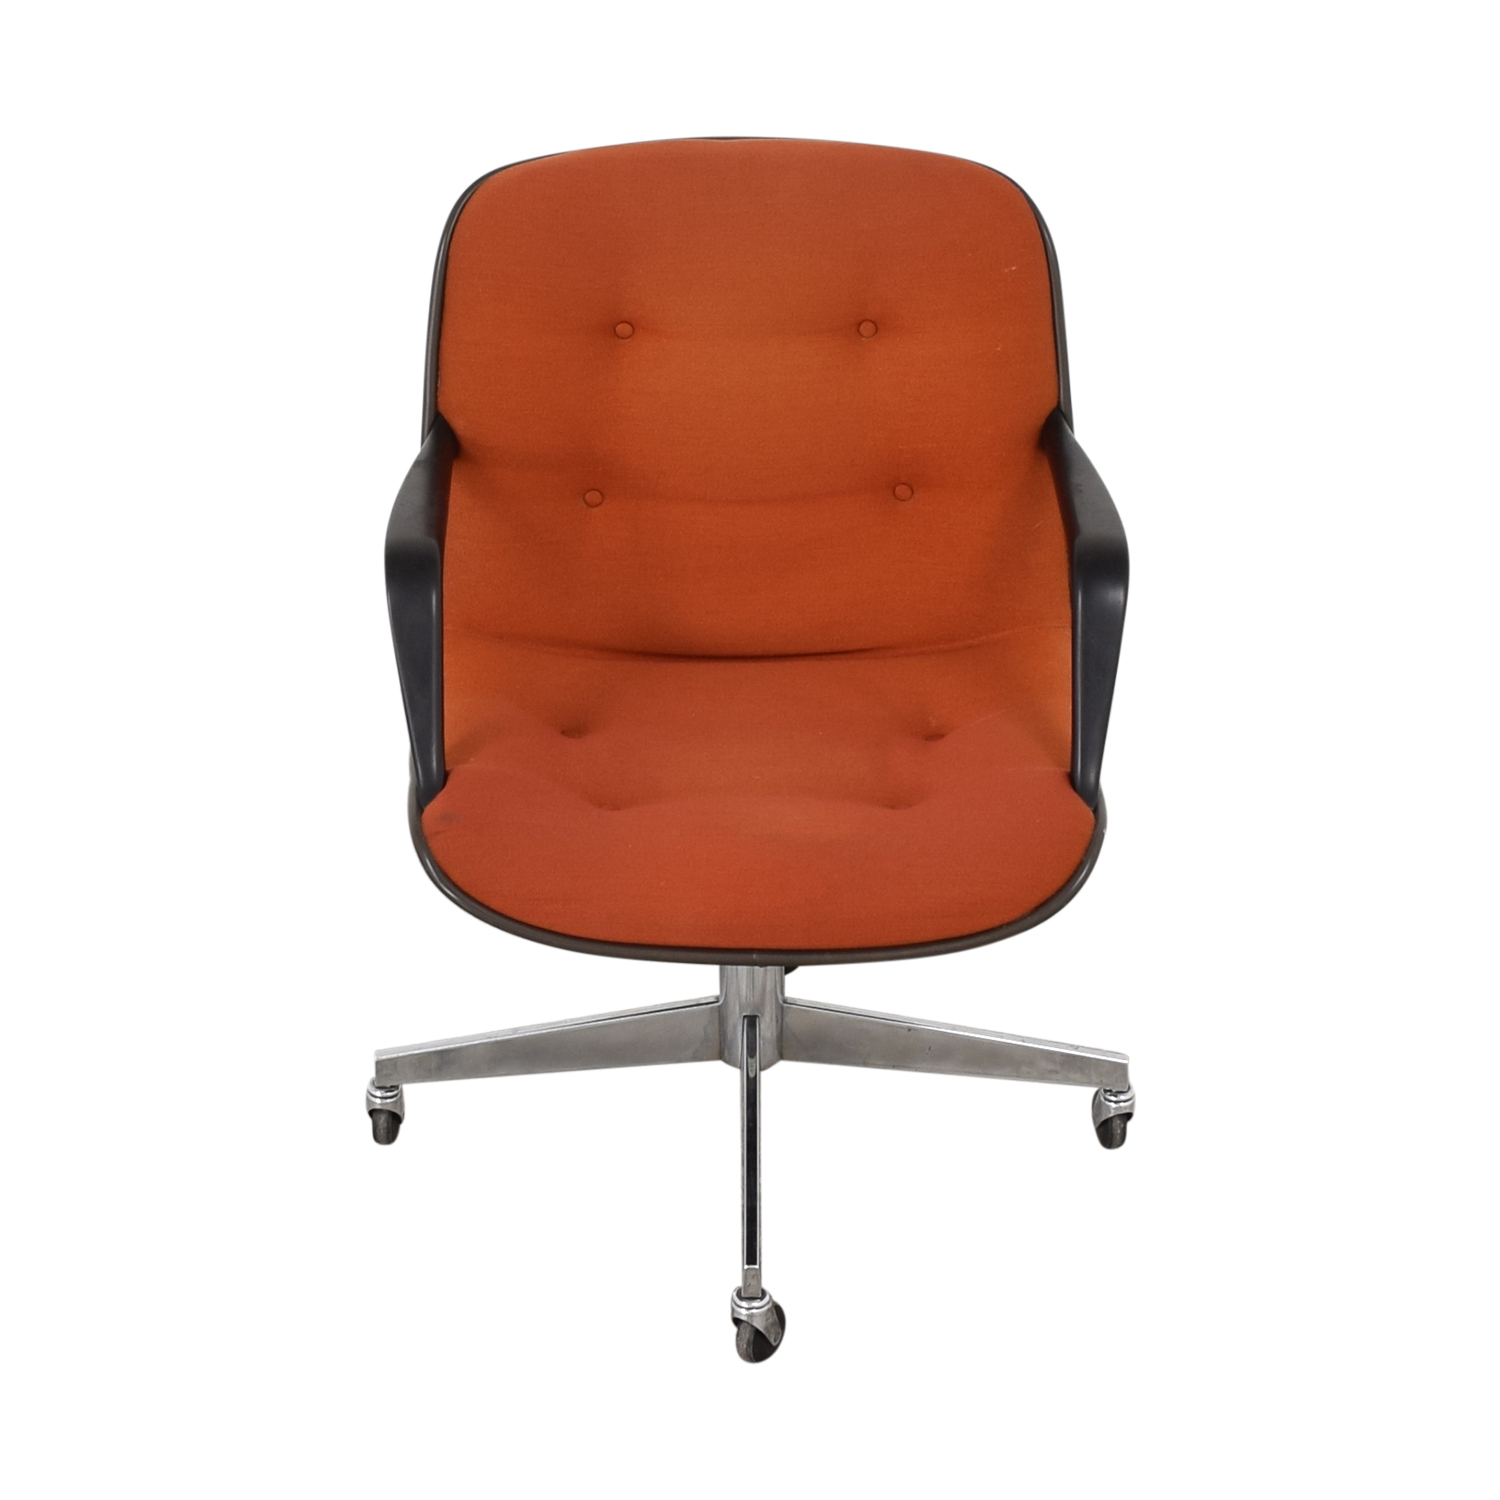 Steelcase Steelcase Mid Century Modern Office Chair ct